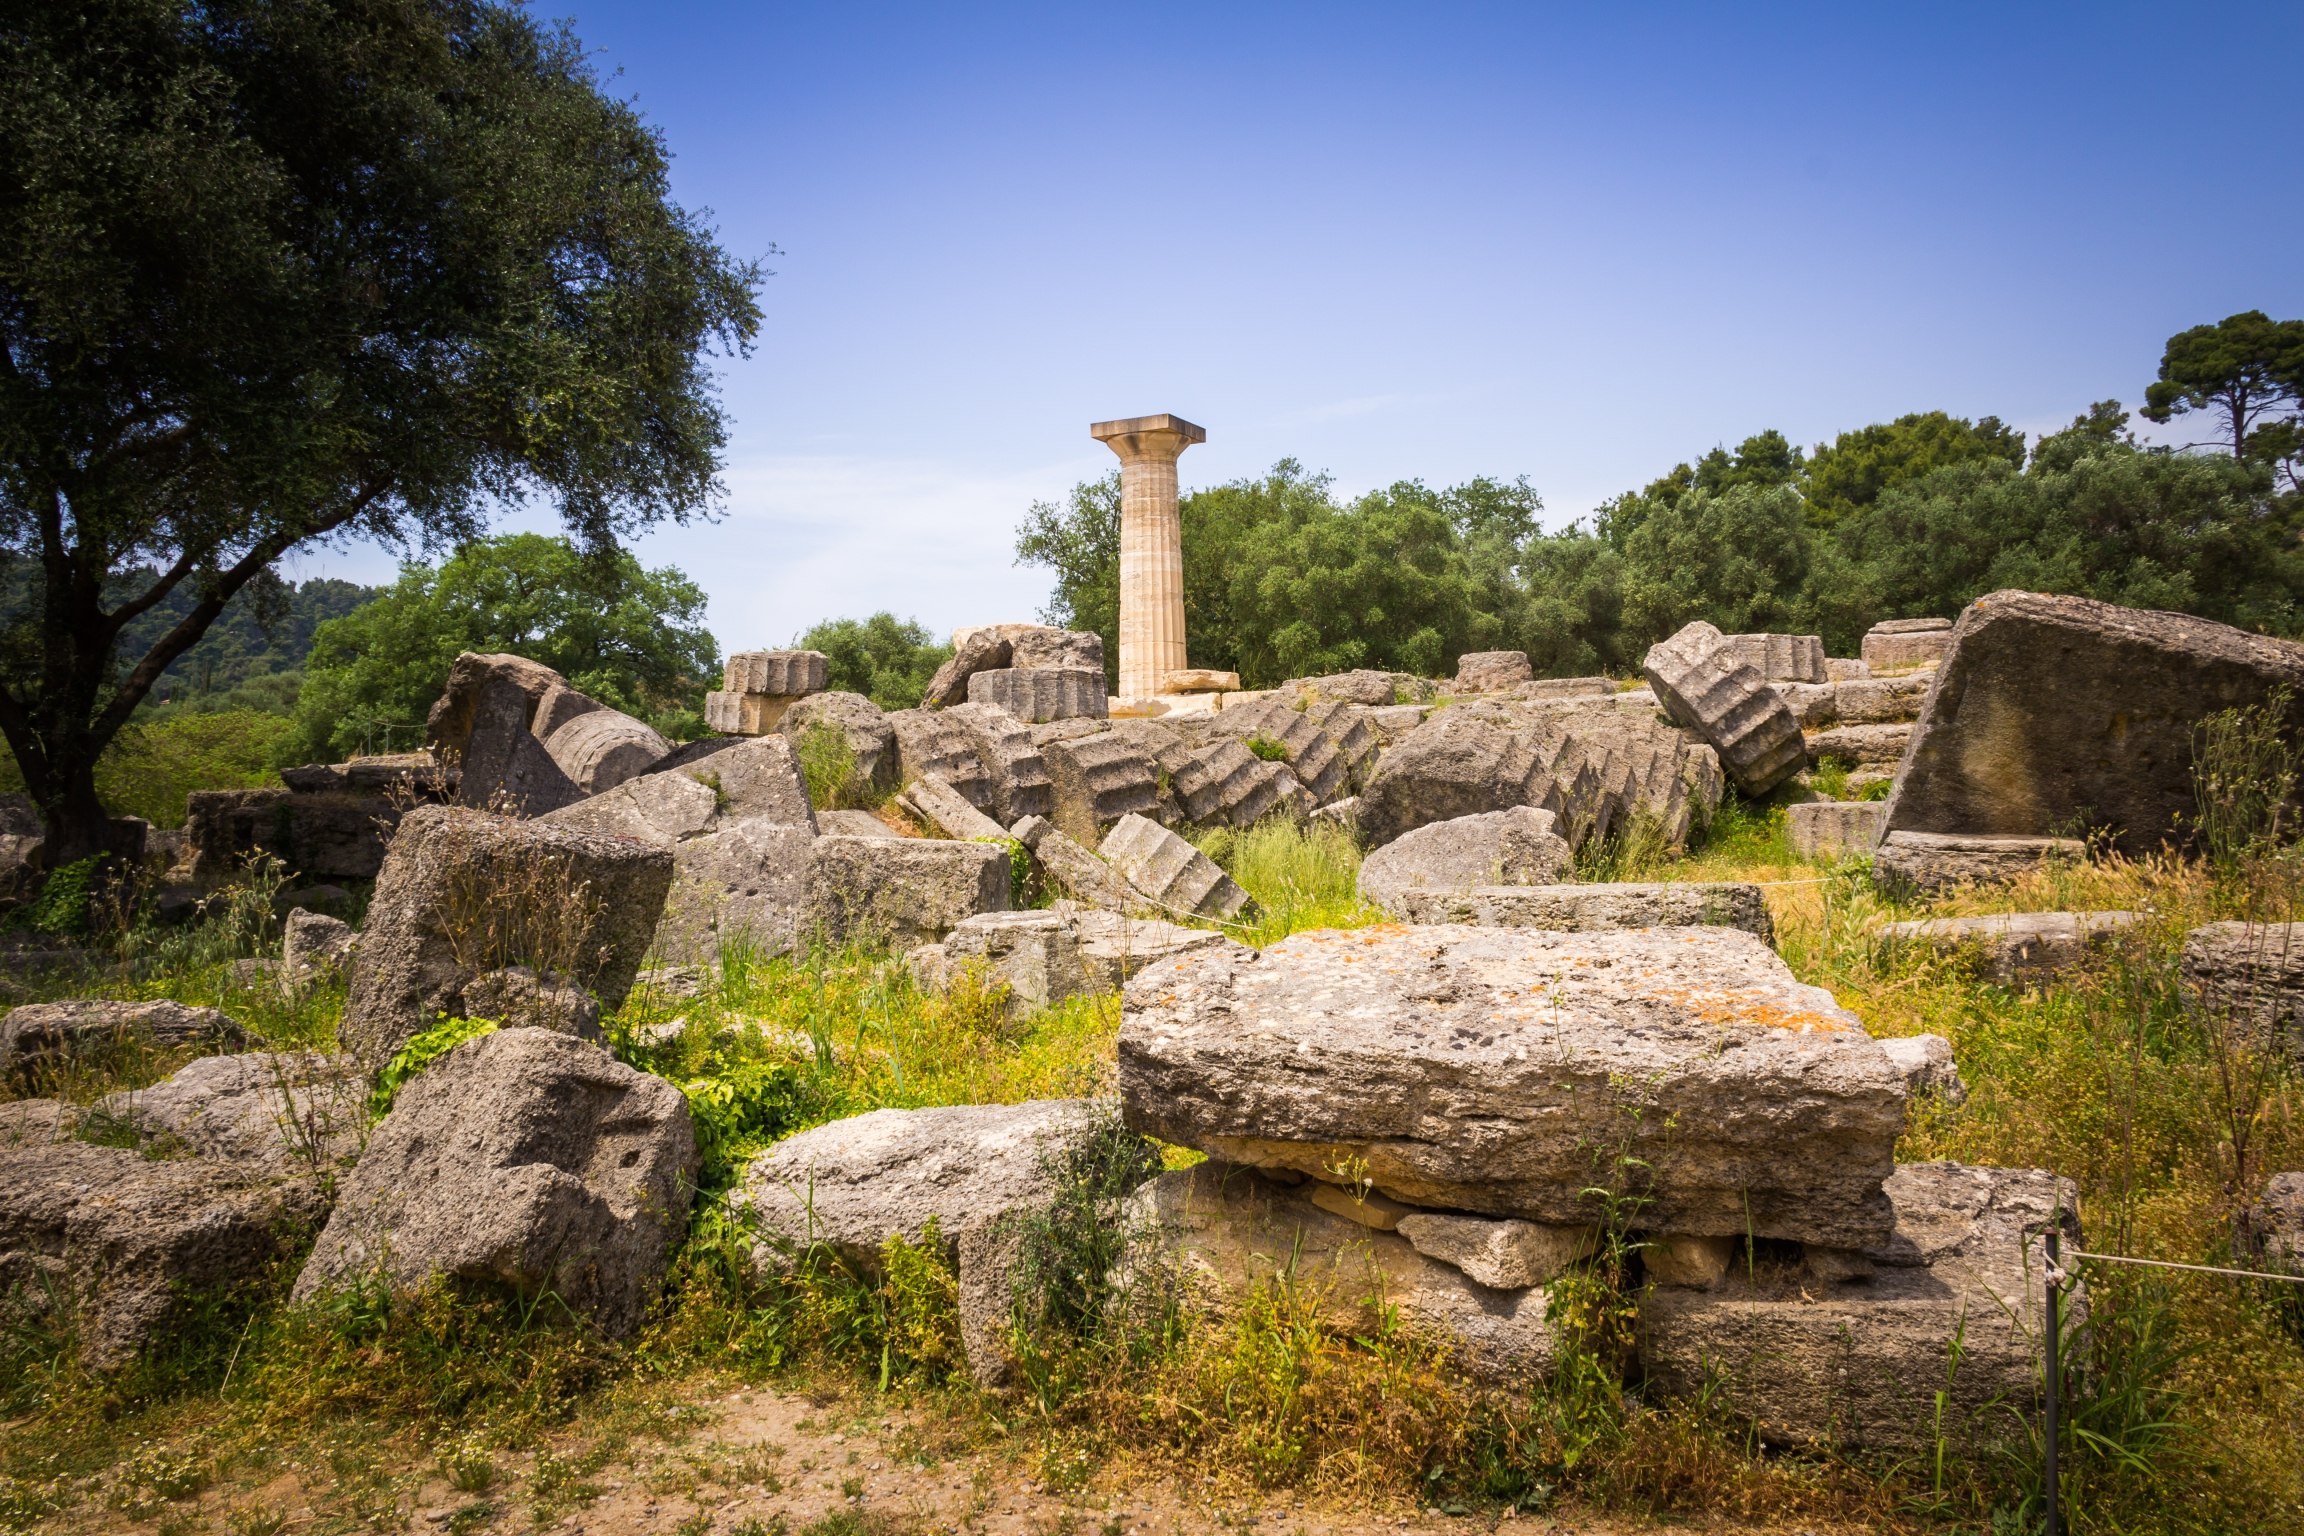 The remains of the Ancient Temple of Zeus at Olympia.